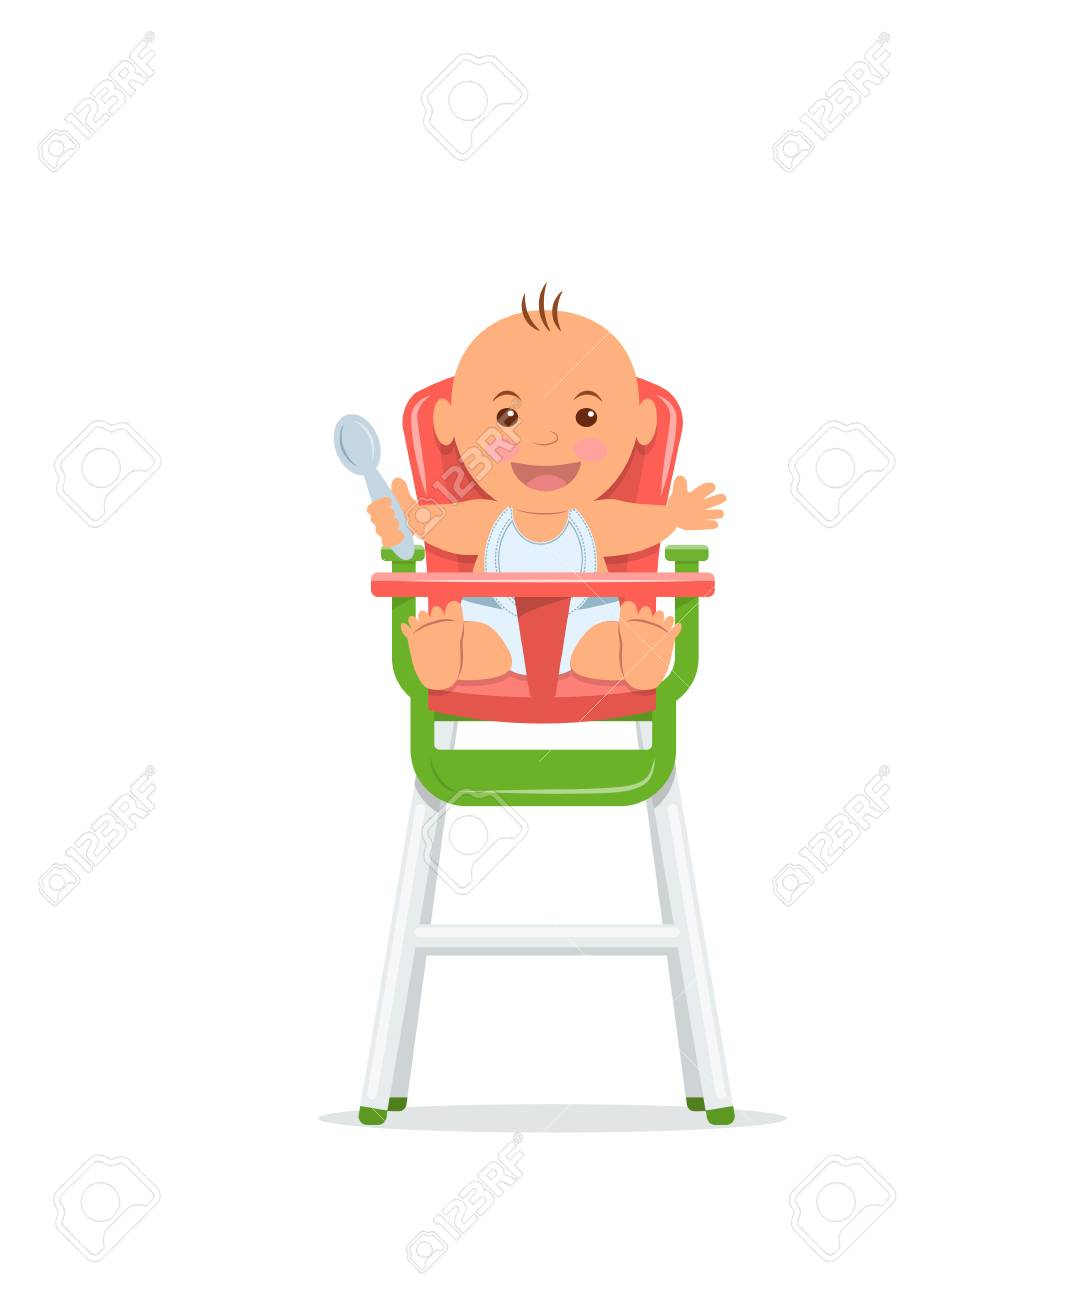 Cute Baby Sits On A High Chair And Holds A Spoon Baby Healthy